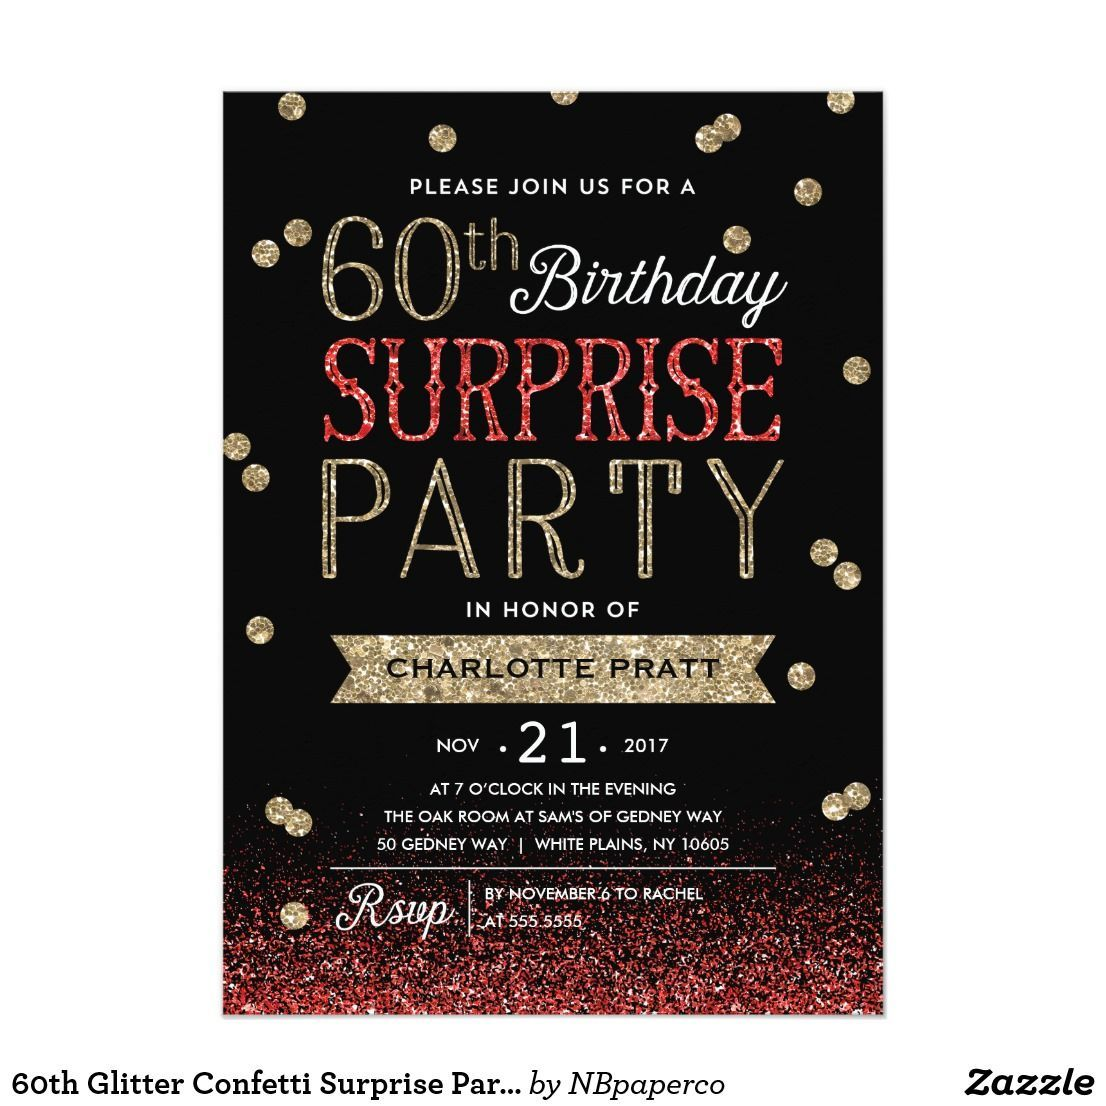 60th Glitter Confetti Surprise Party InvitationThis chic and stylish ...